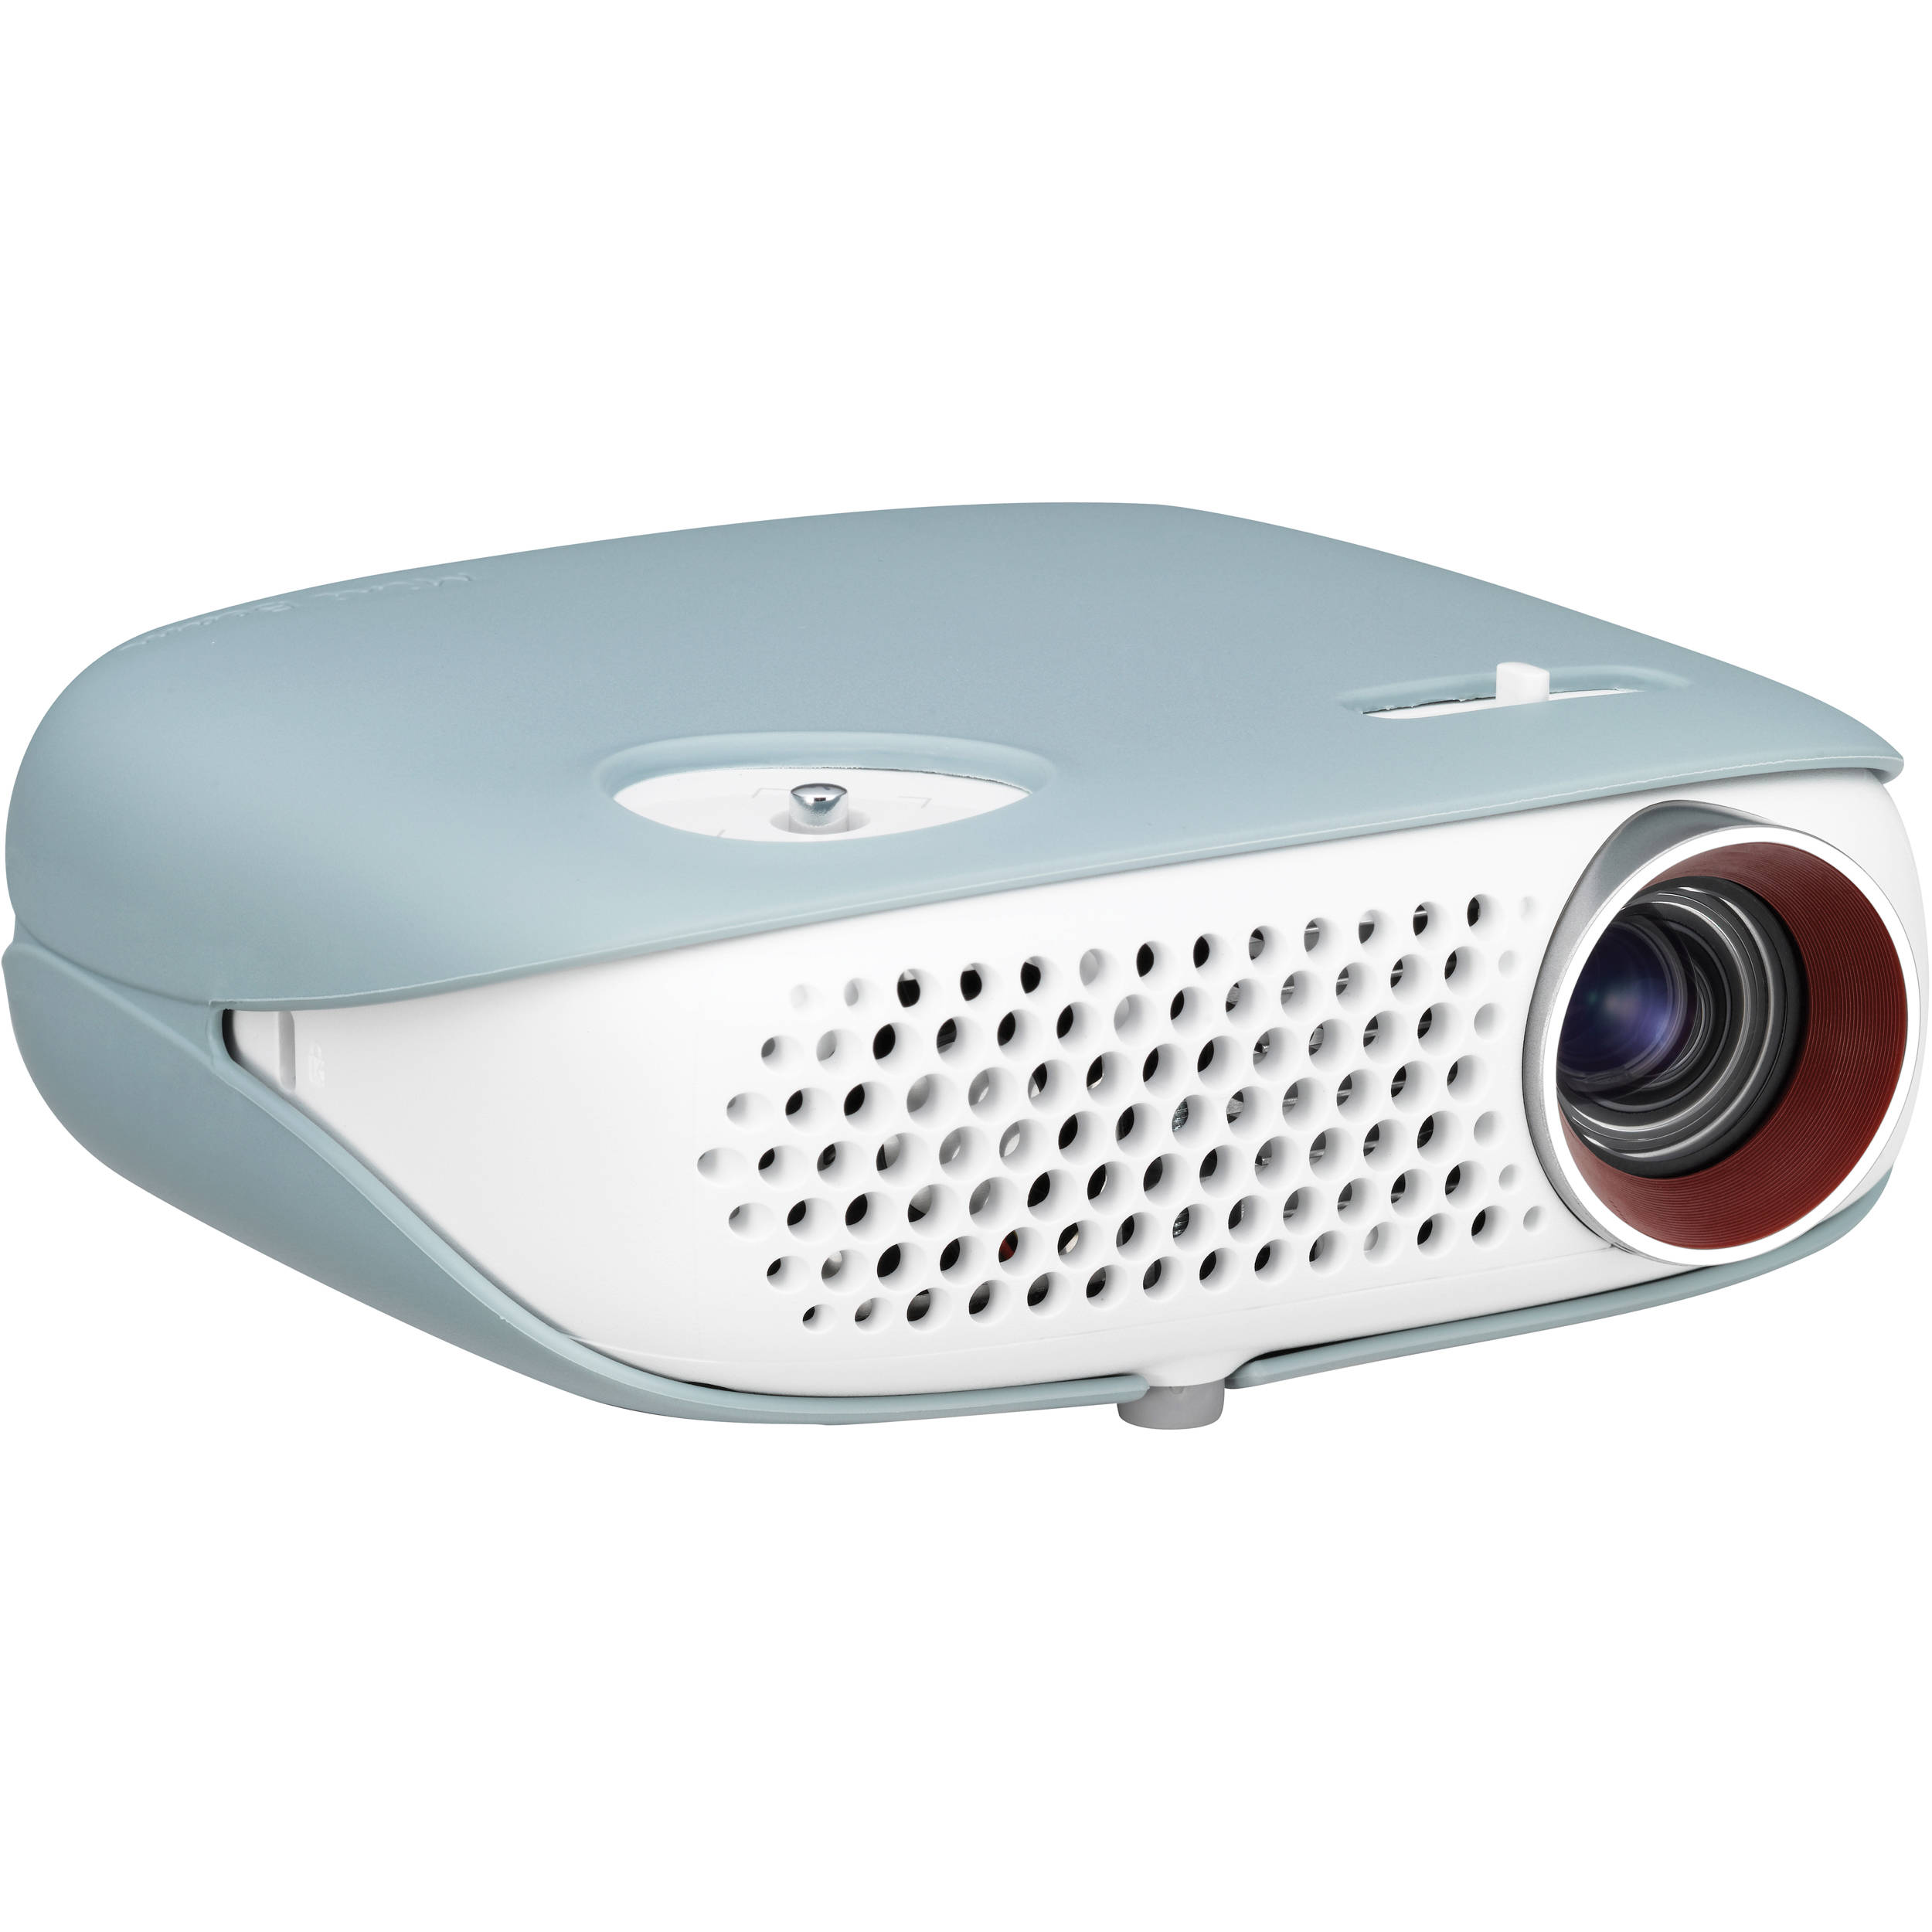 Lg pw800 portable hd led projector pw800 b h photo video for Best small hd projector